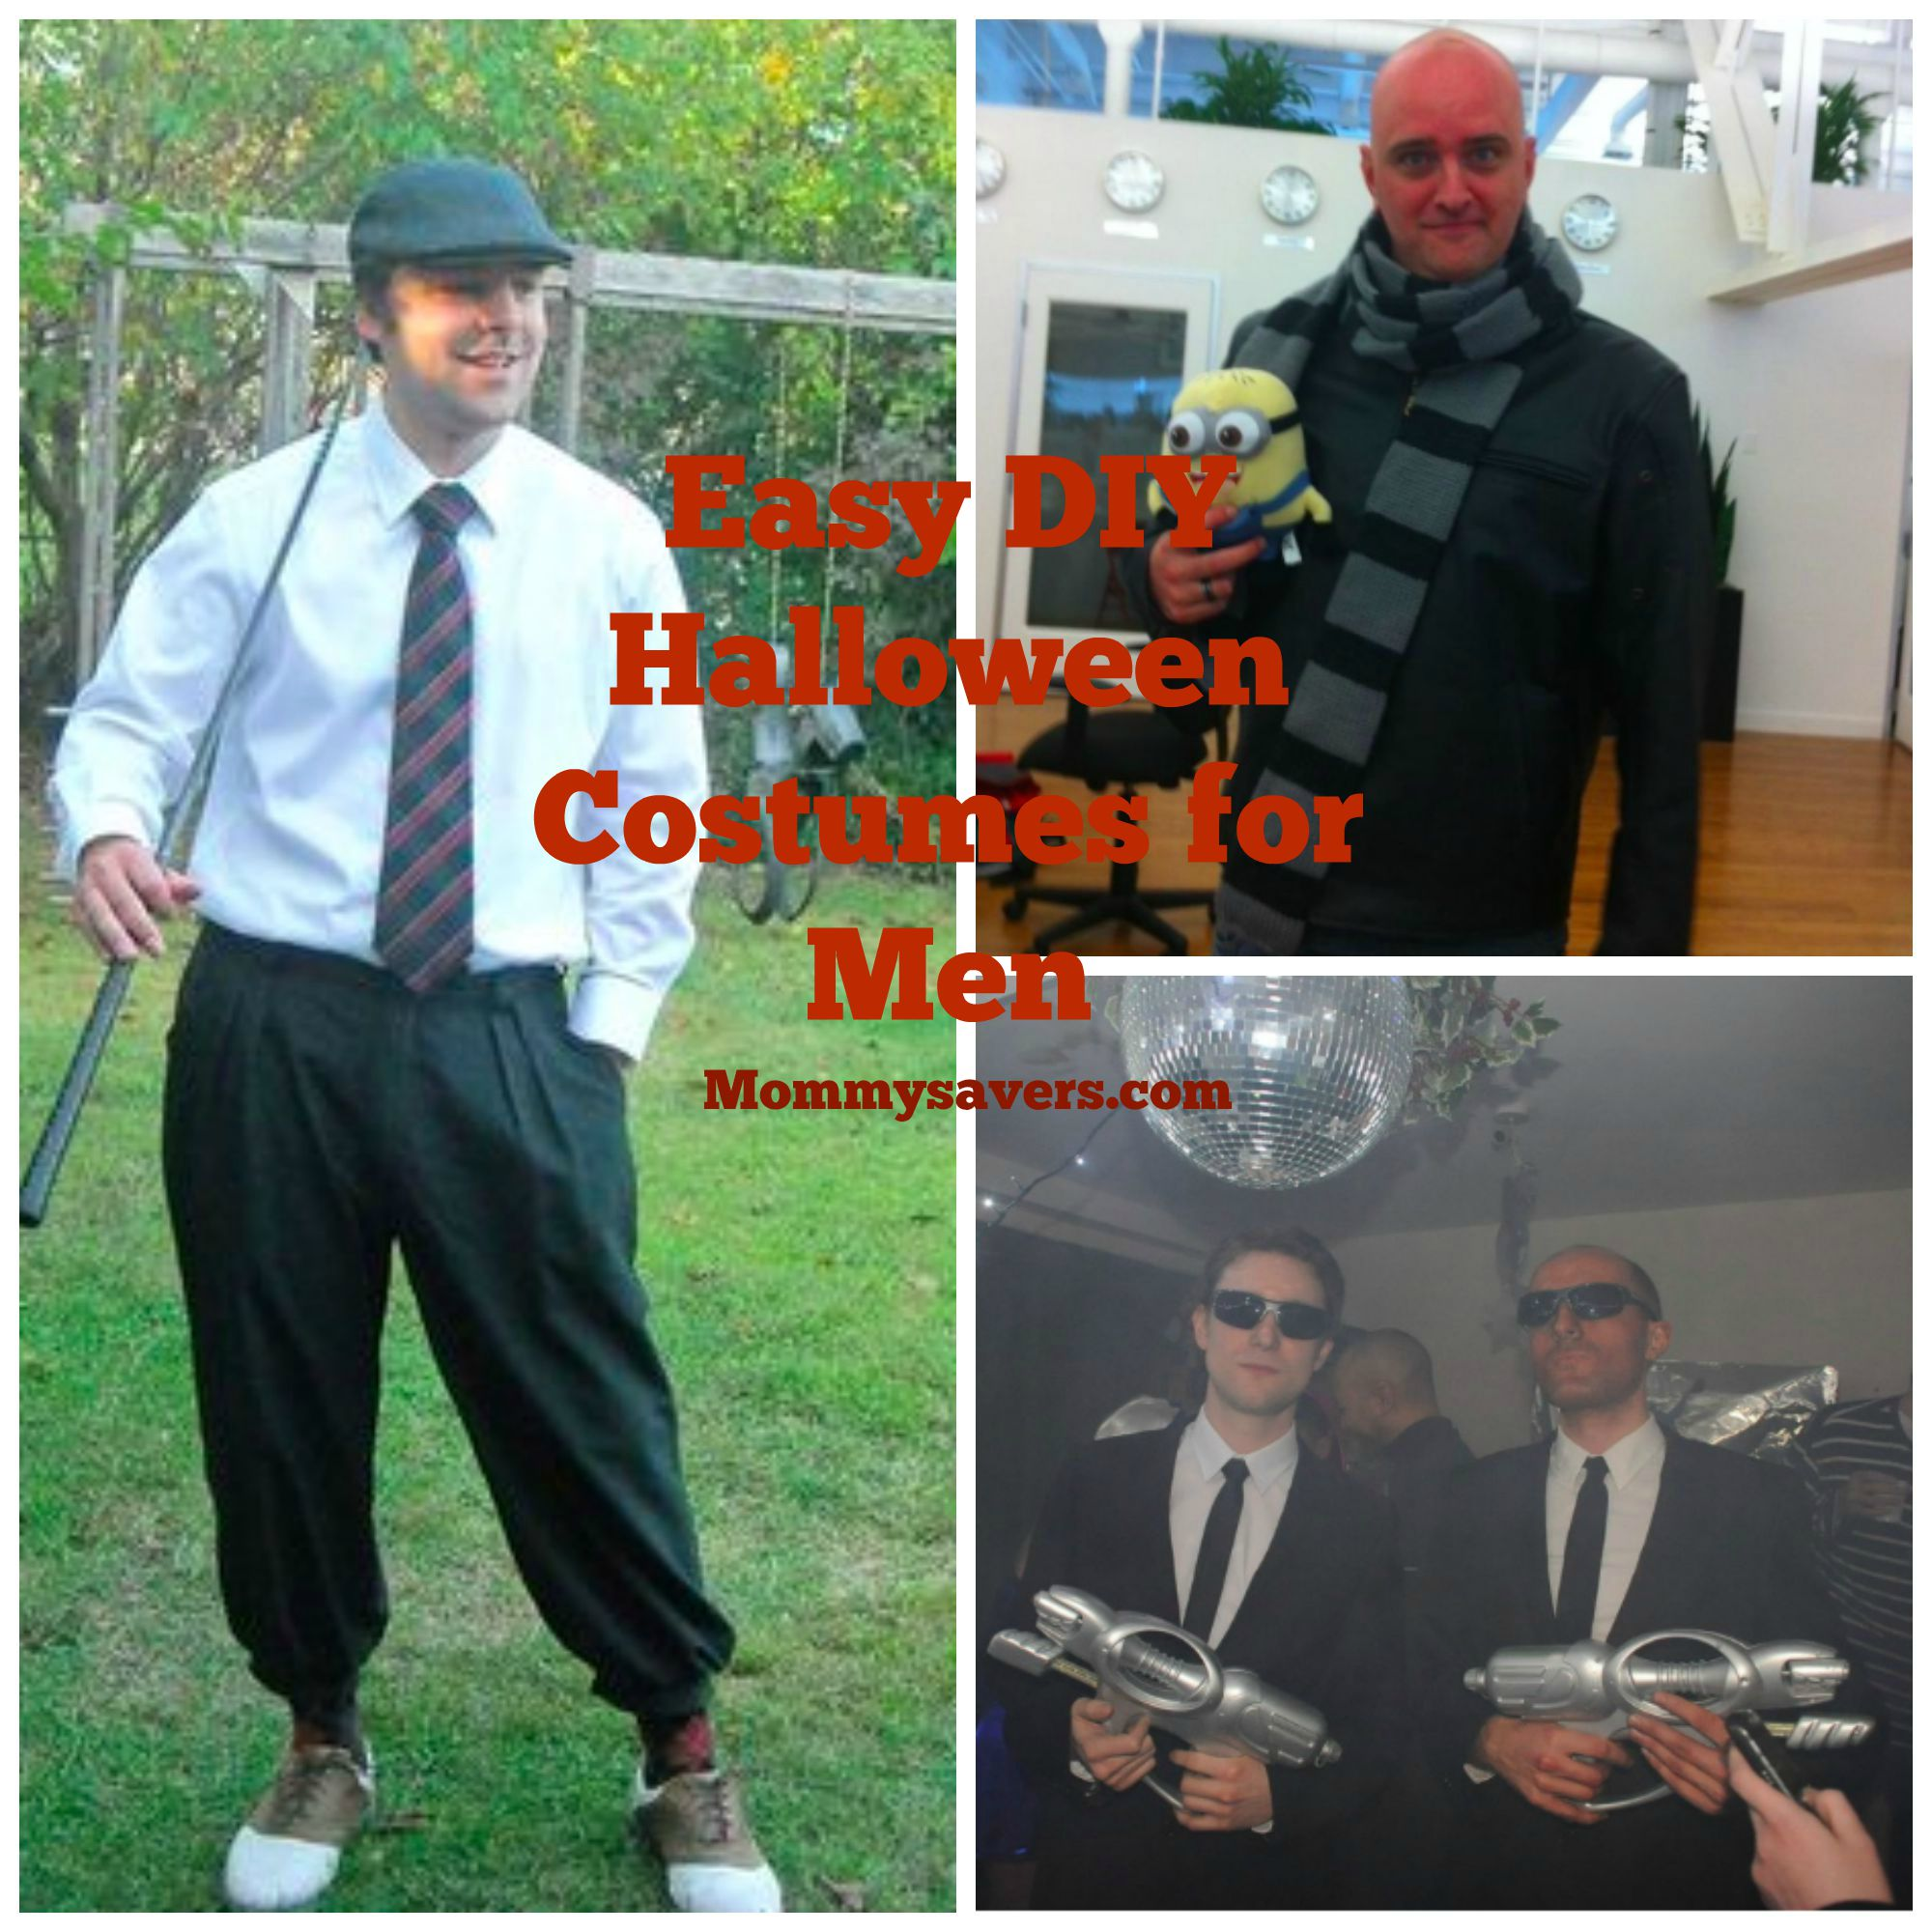 DIY Halloween Costumes for Men  sc 1 st  Mommysavers & DIY Easy Halloween Costume Ideas for Men | Mommysavers